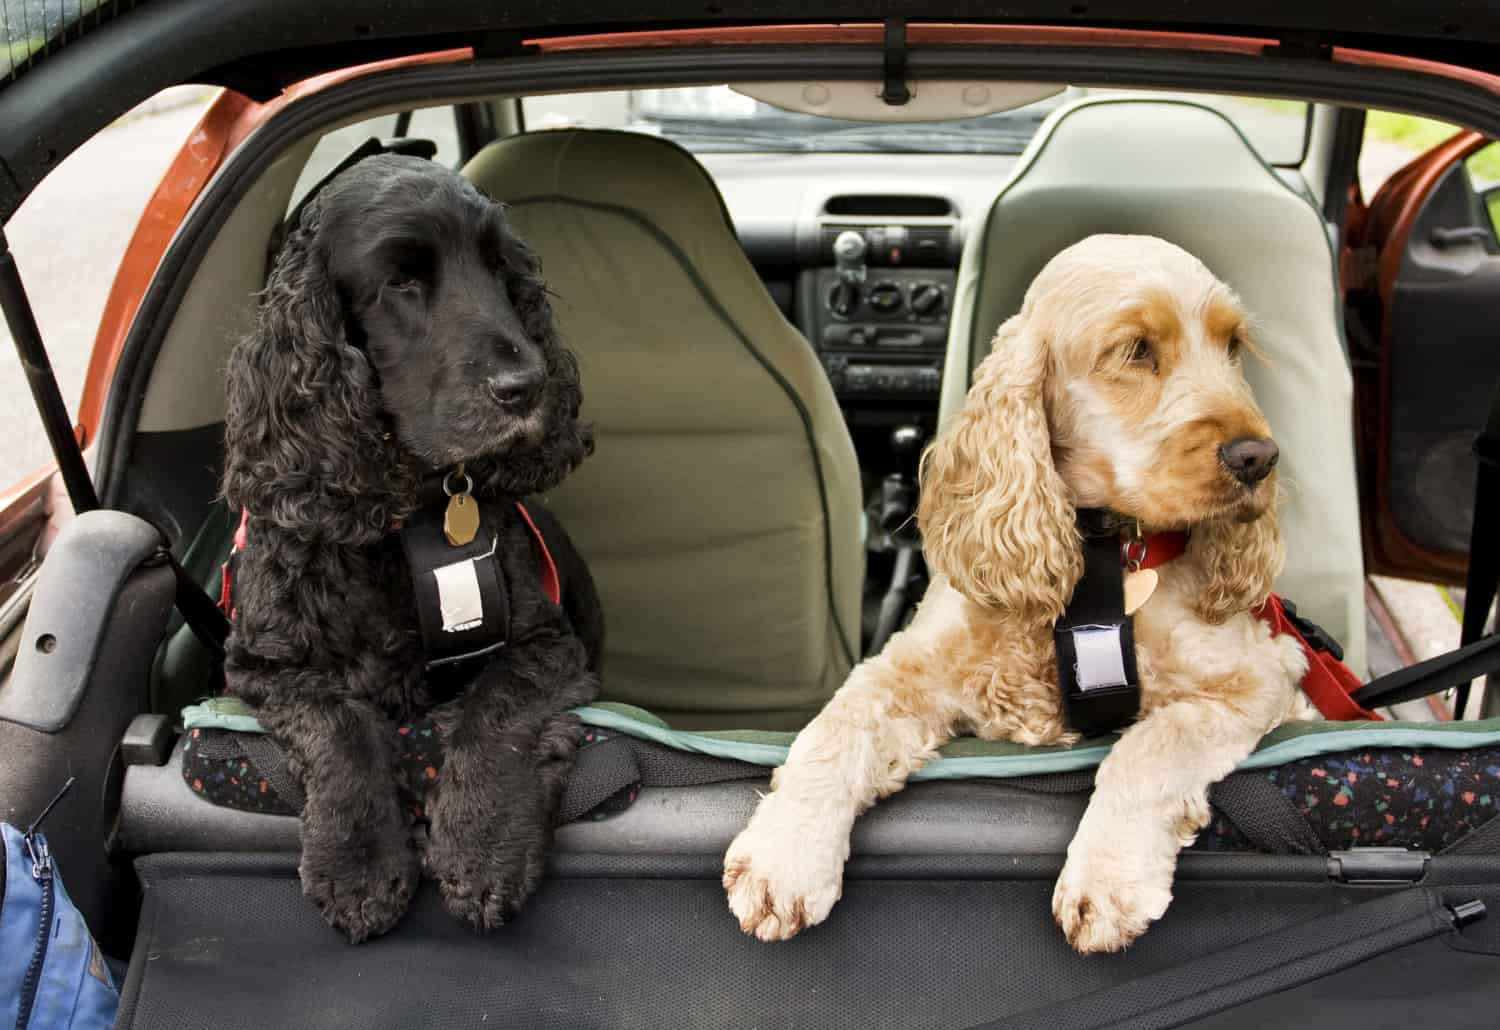 Black and gold cocker spaniel dogs in the back of the car